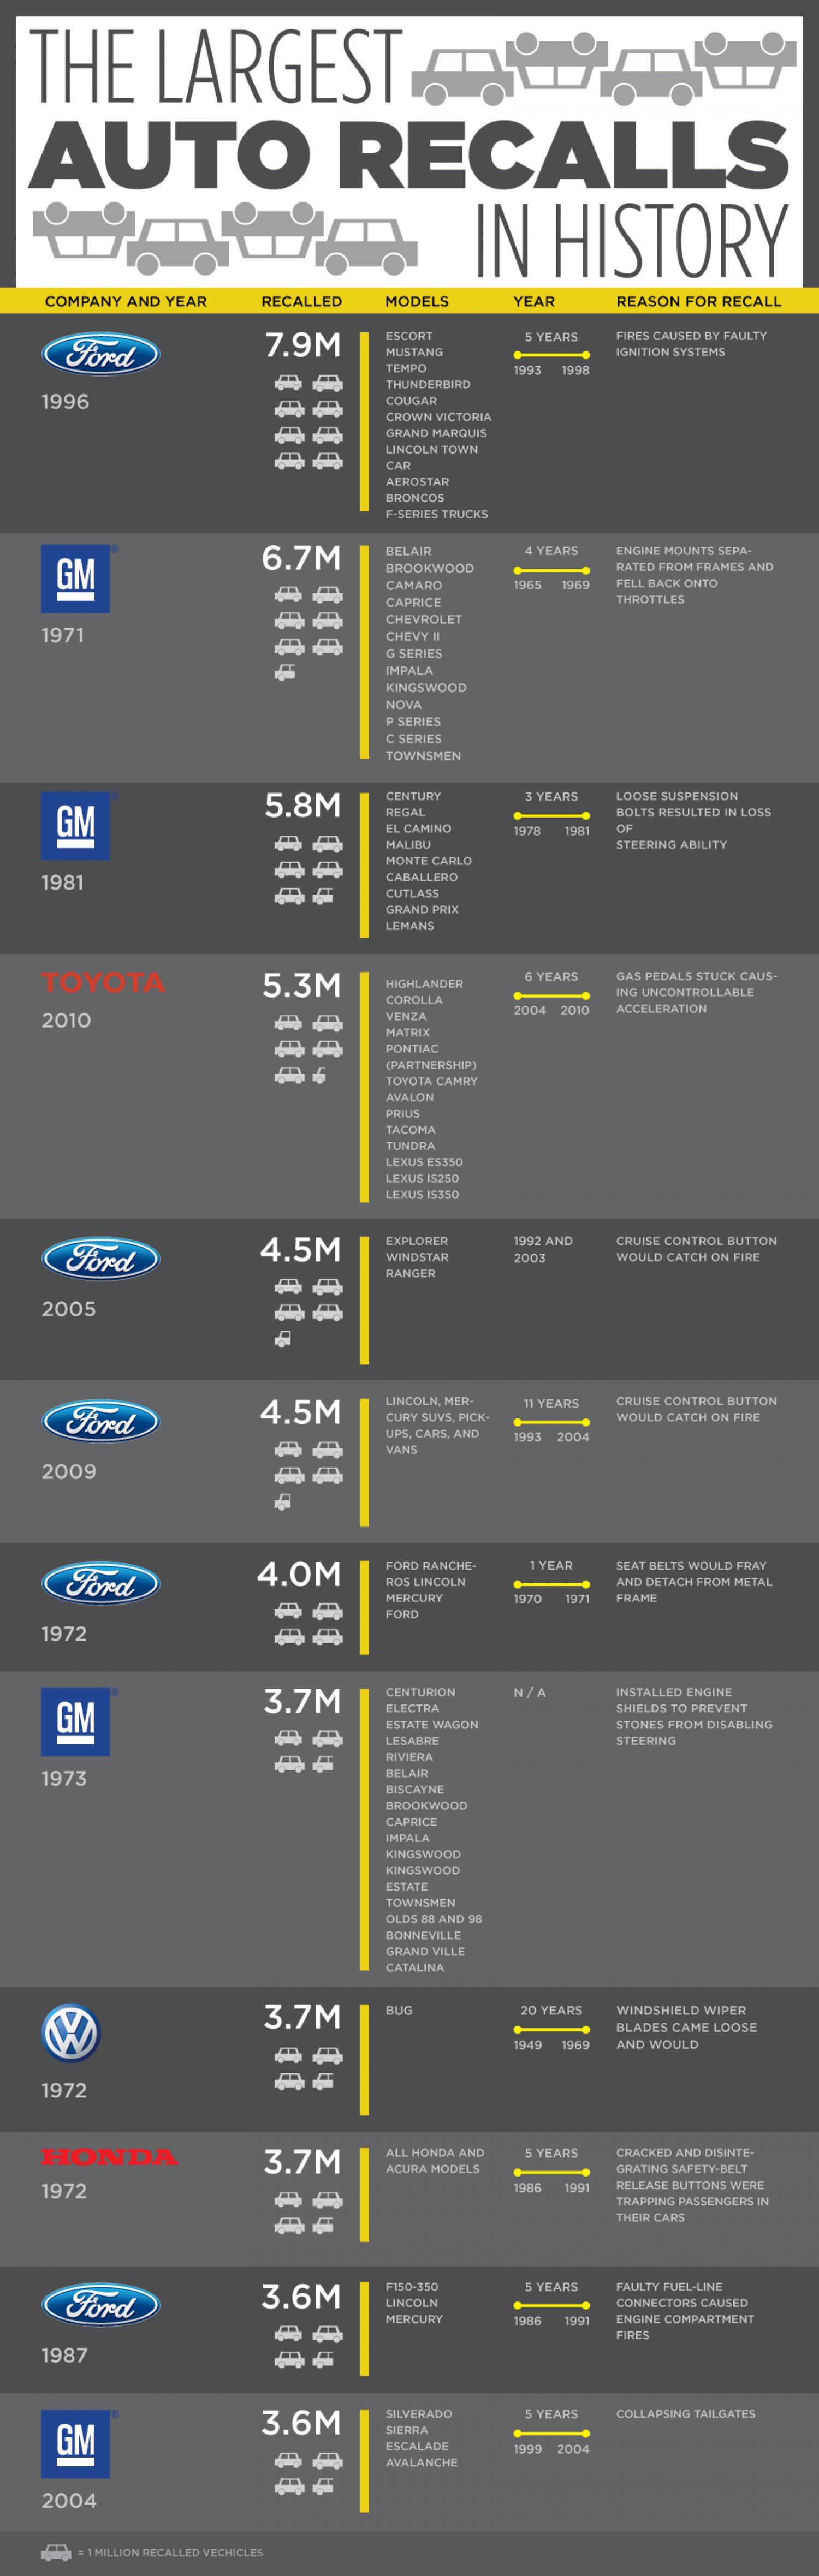 12 Largest Auto Recalls In History Infographic